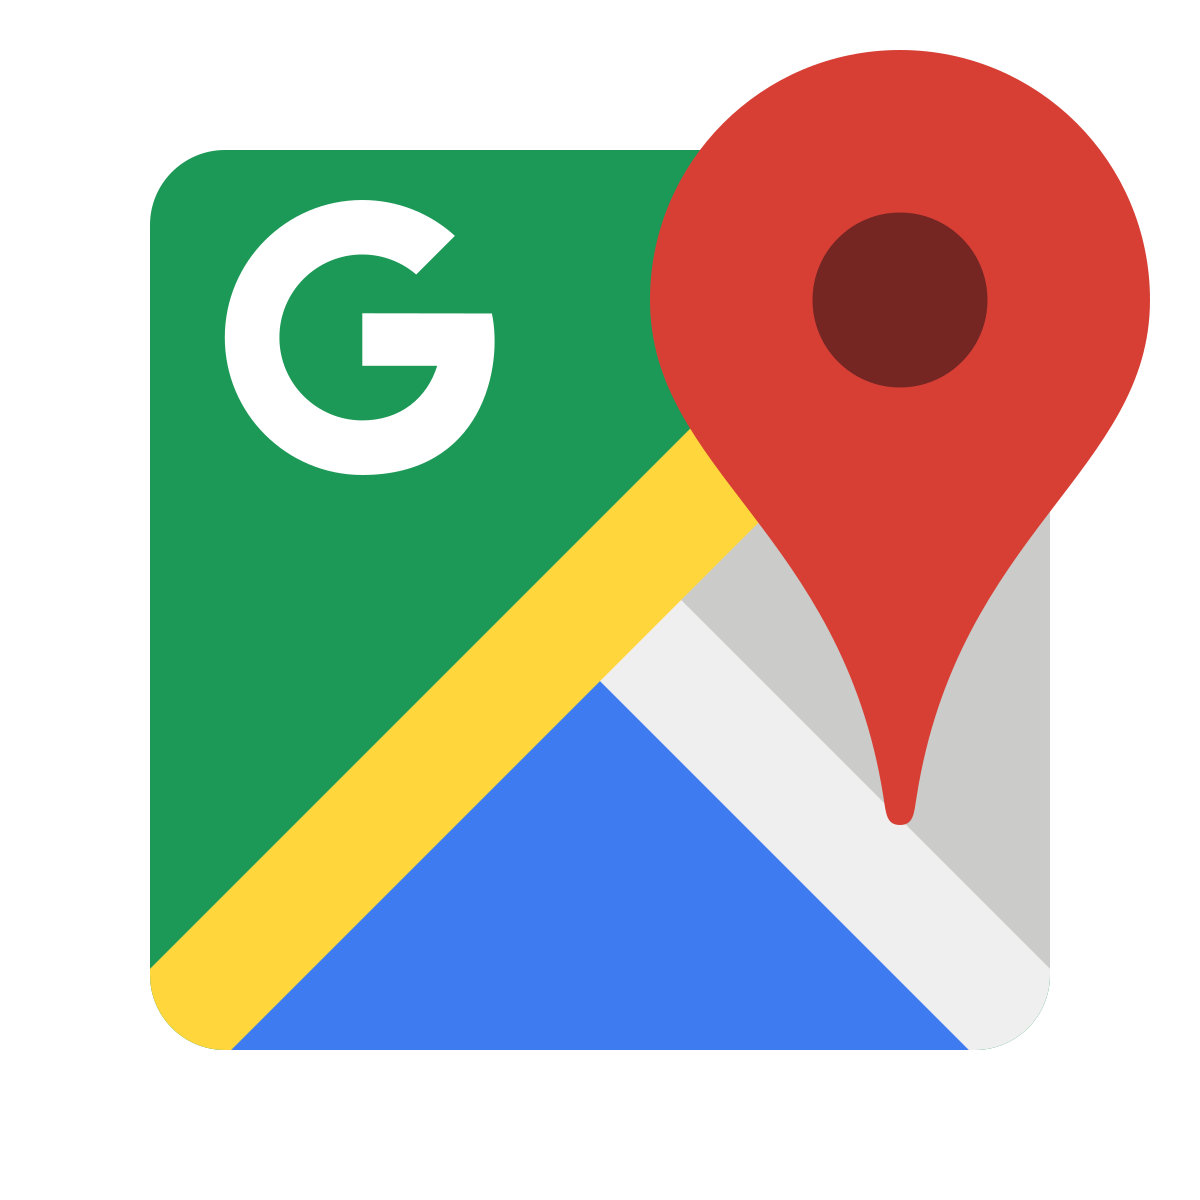 Clipart definition invented. Google maps app wikipedia